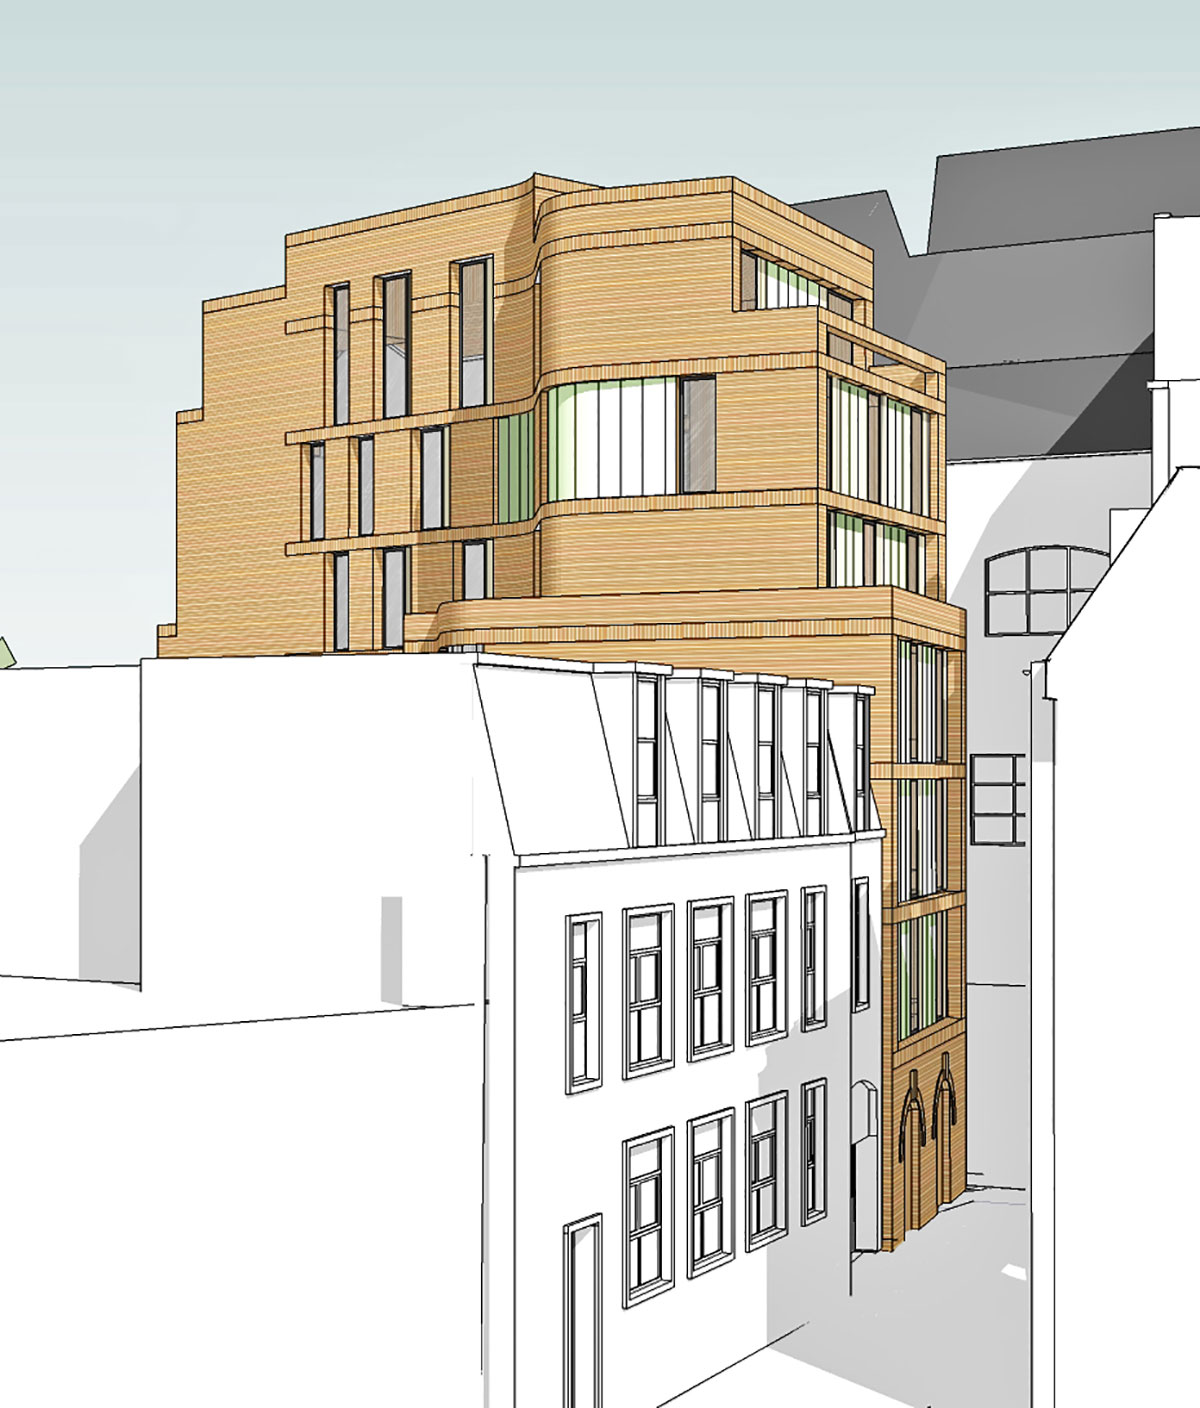 Friars Entry Project - Adrian James Architects, Oxford